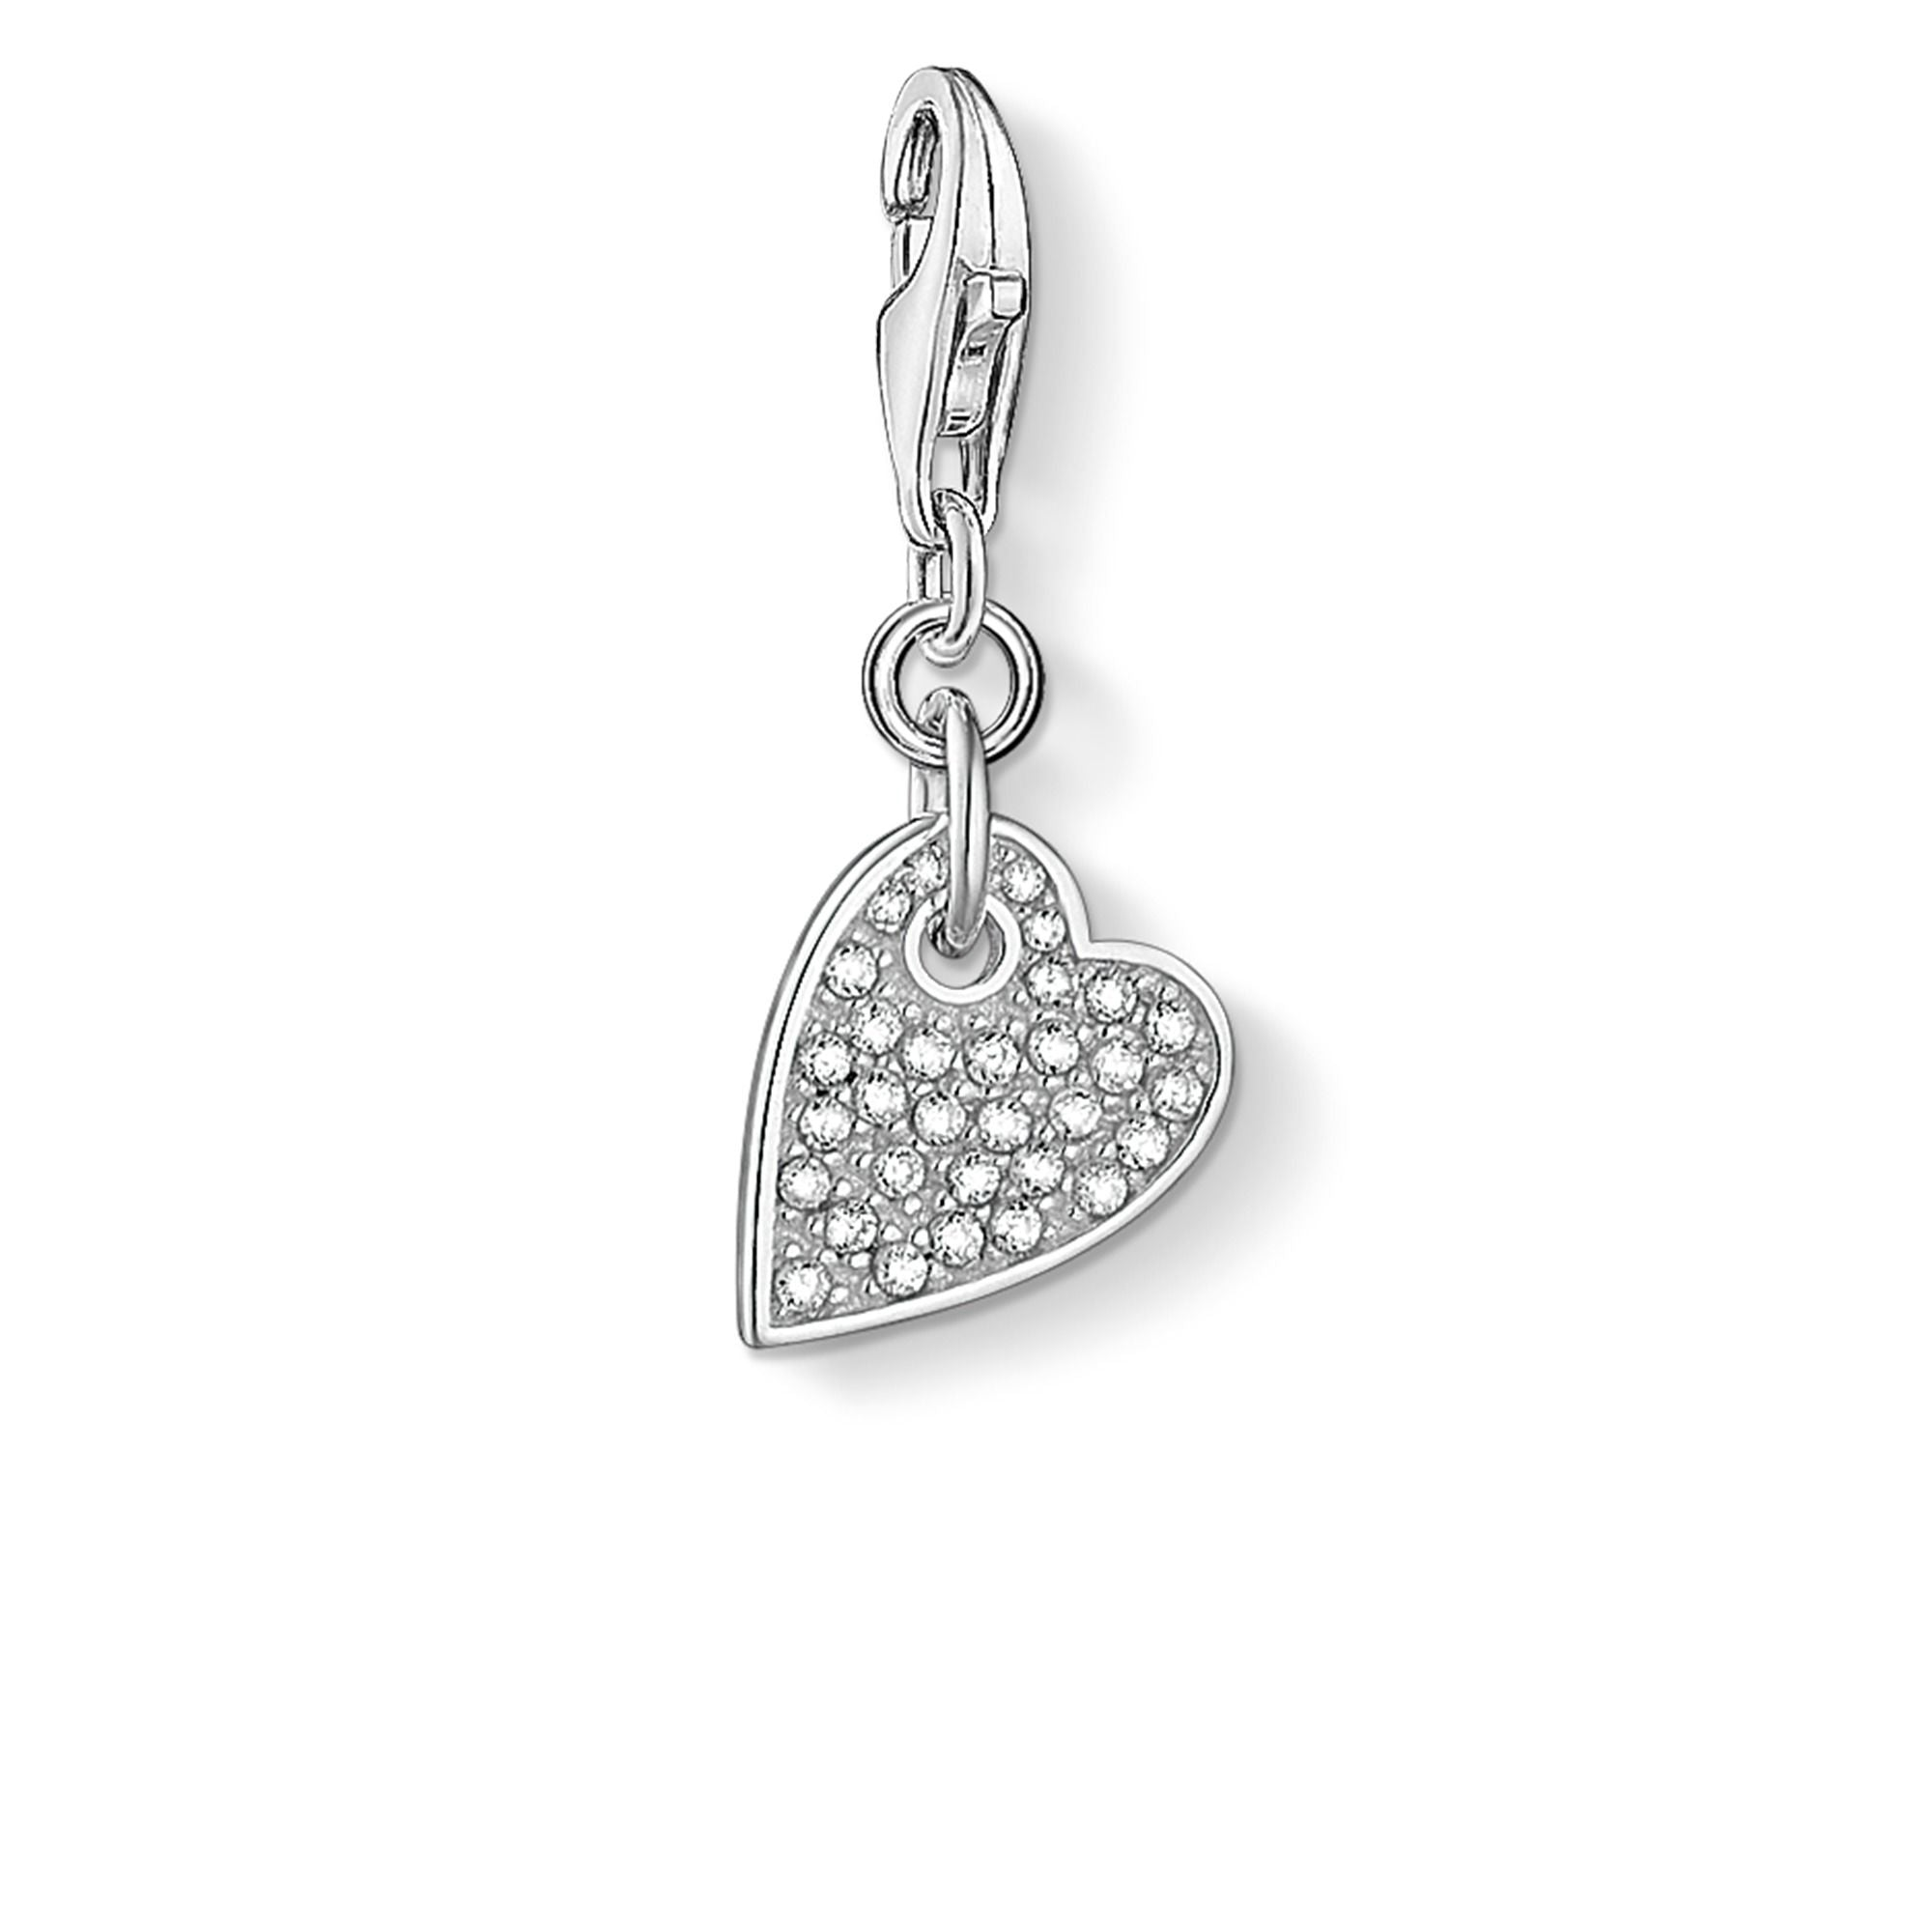 Thomas Sabo Charm Club Heart Love 1760-051-14